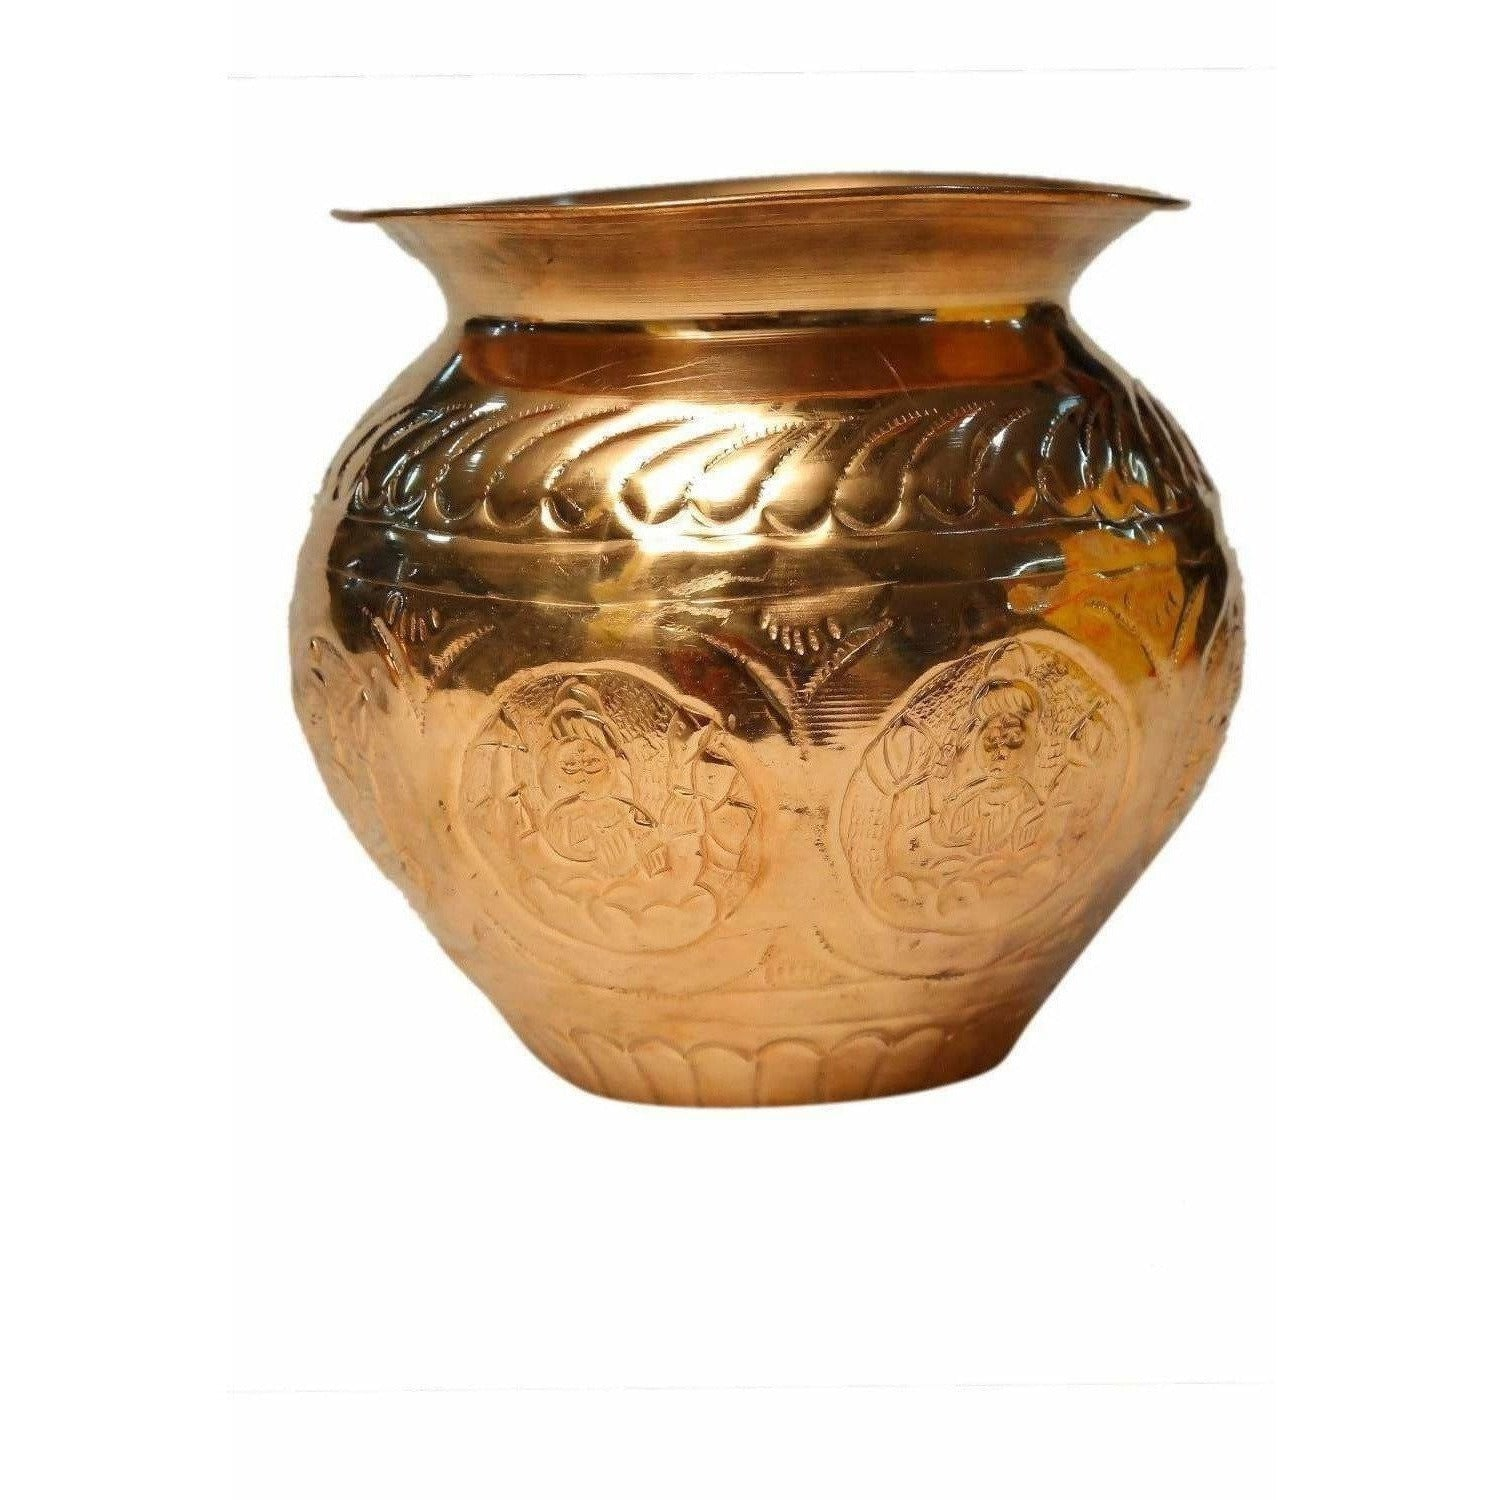 Pooja-8 Faces Globular Lakshmi Kalash (Medium size) / Ashtalakshmi Kalasam (Medium Size) - Dista Cart